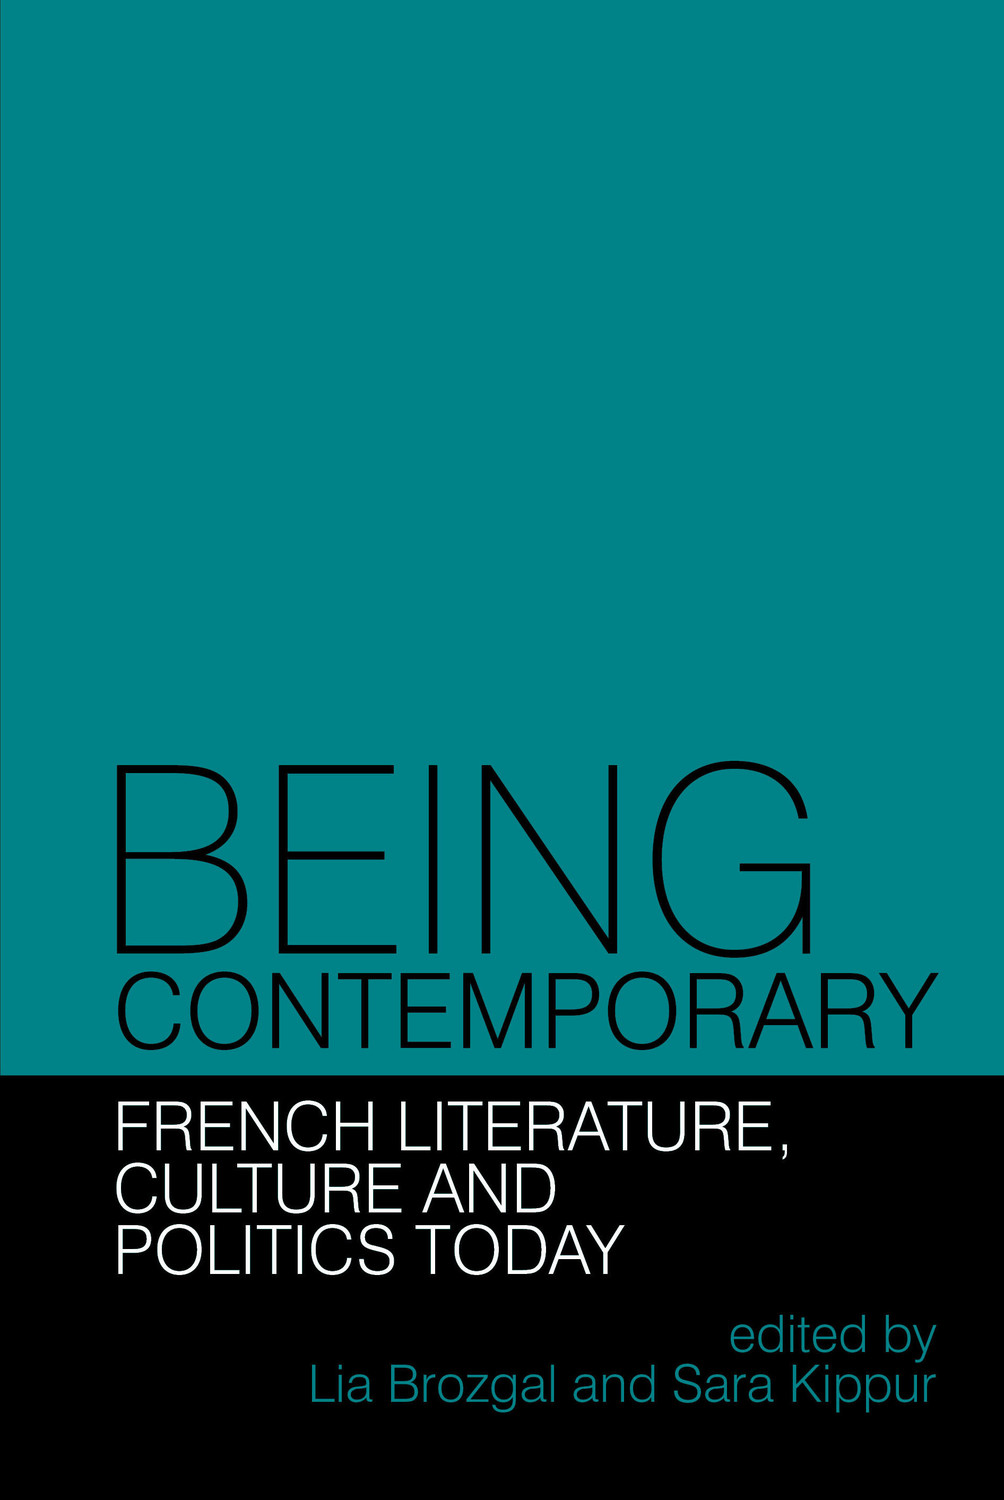 Being Contemporary: French Literature, Culture and Politics Today